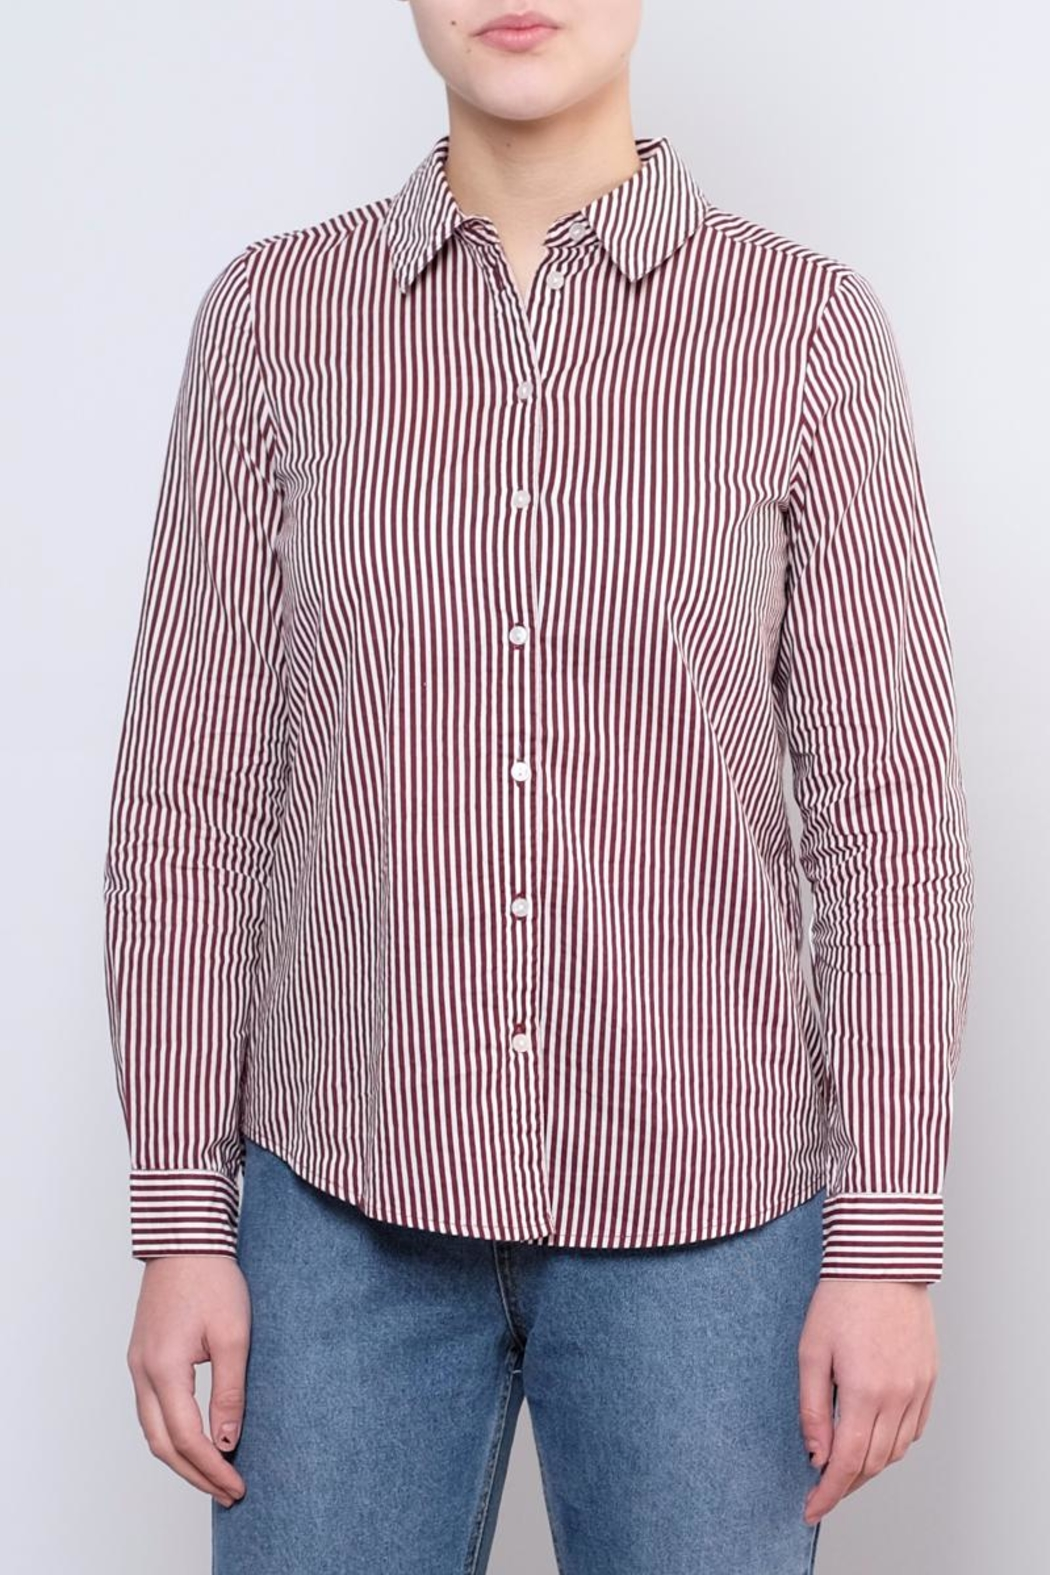 Vero Moda Striped Shirt - Front Cropped Image